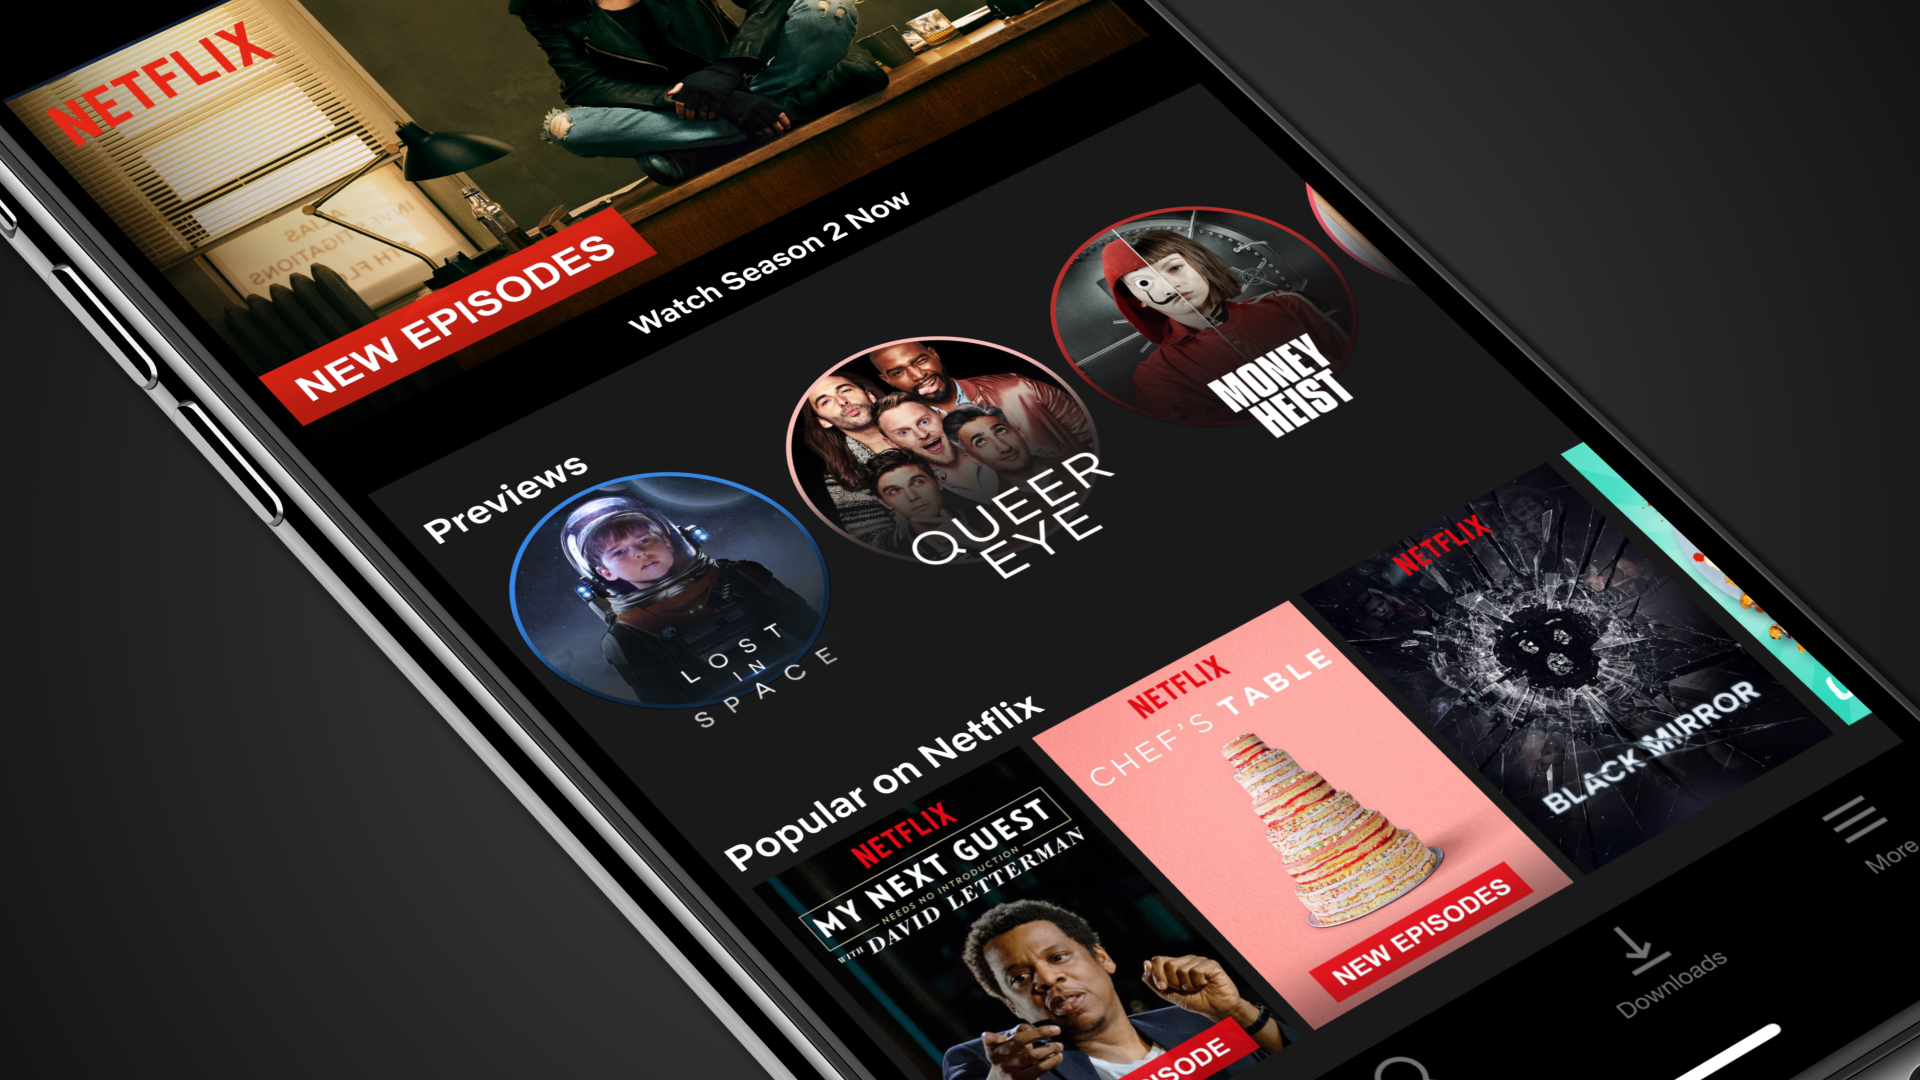 Netflix tests cheaper subscription plan with HD streaming support for India